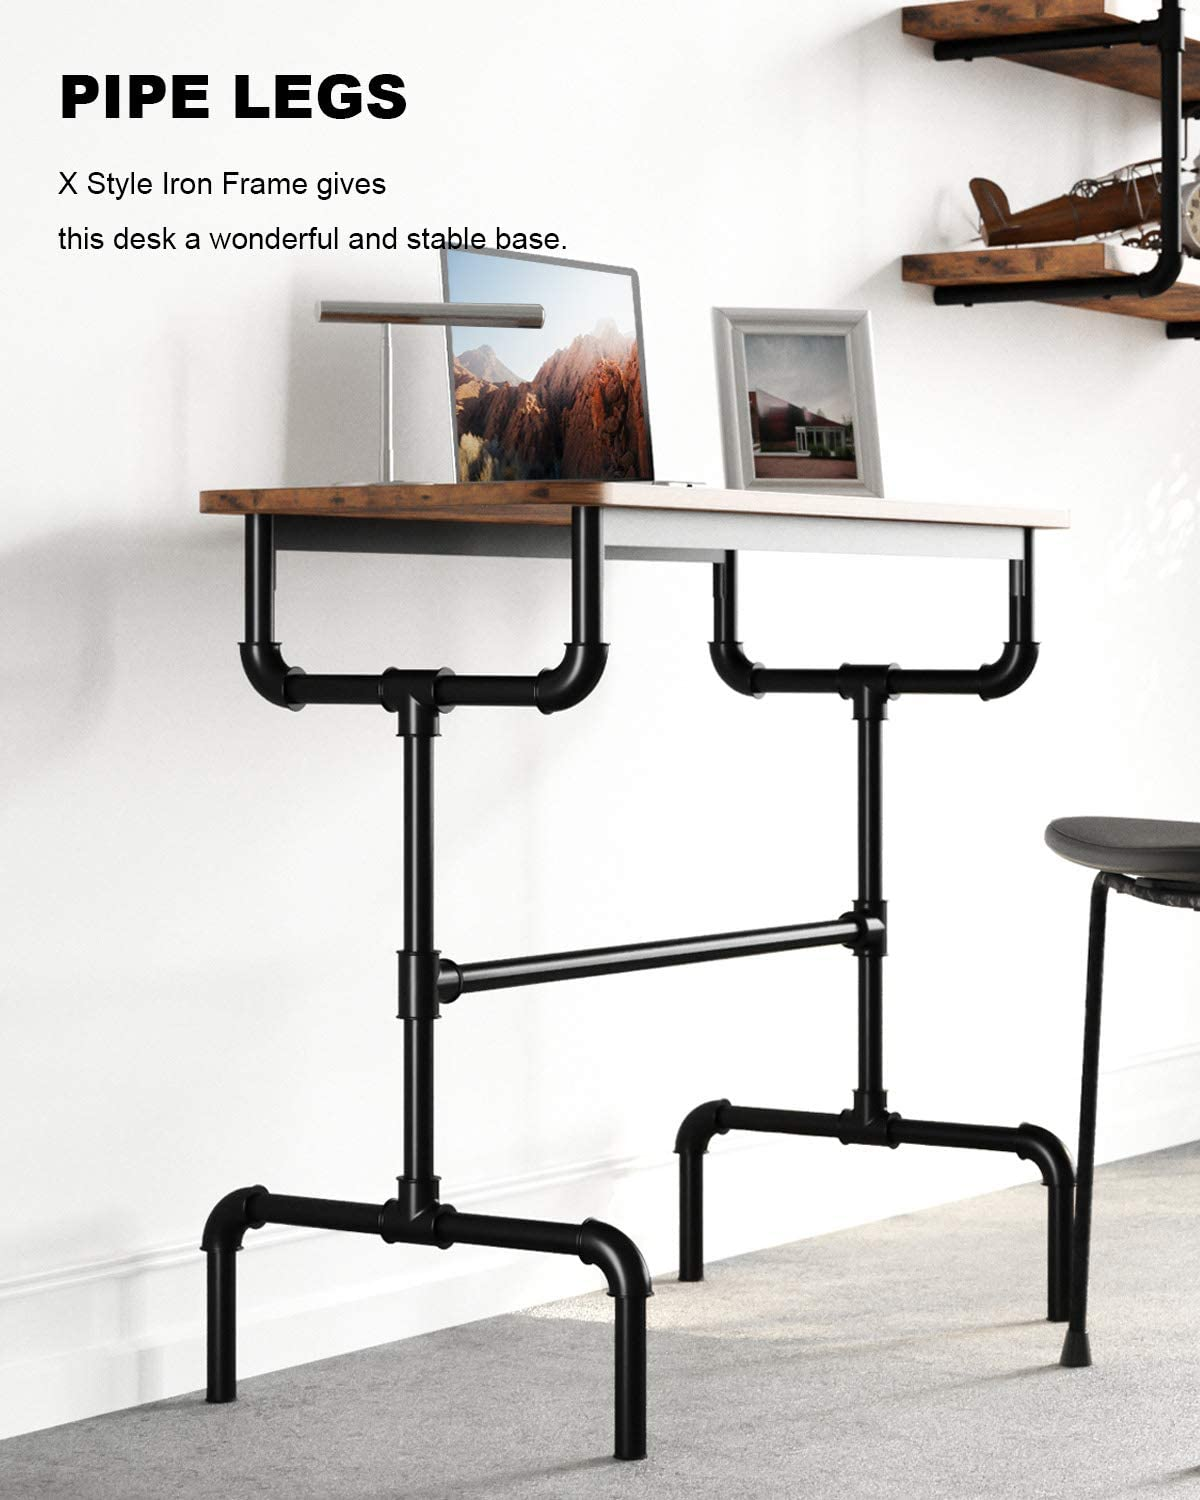 Dining Room Living Room Sturdy Metal Frame Easy Assembly IRONCK Industrial Bar Table 36 Inches Kitchen Pub Dining High Writing Table with Iron Pipe Legs for Narrow Space